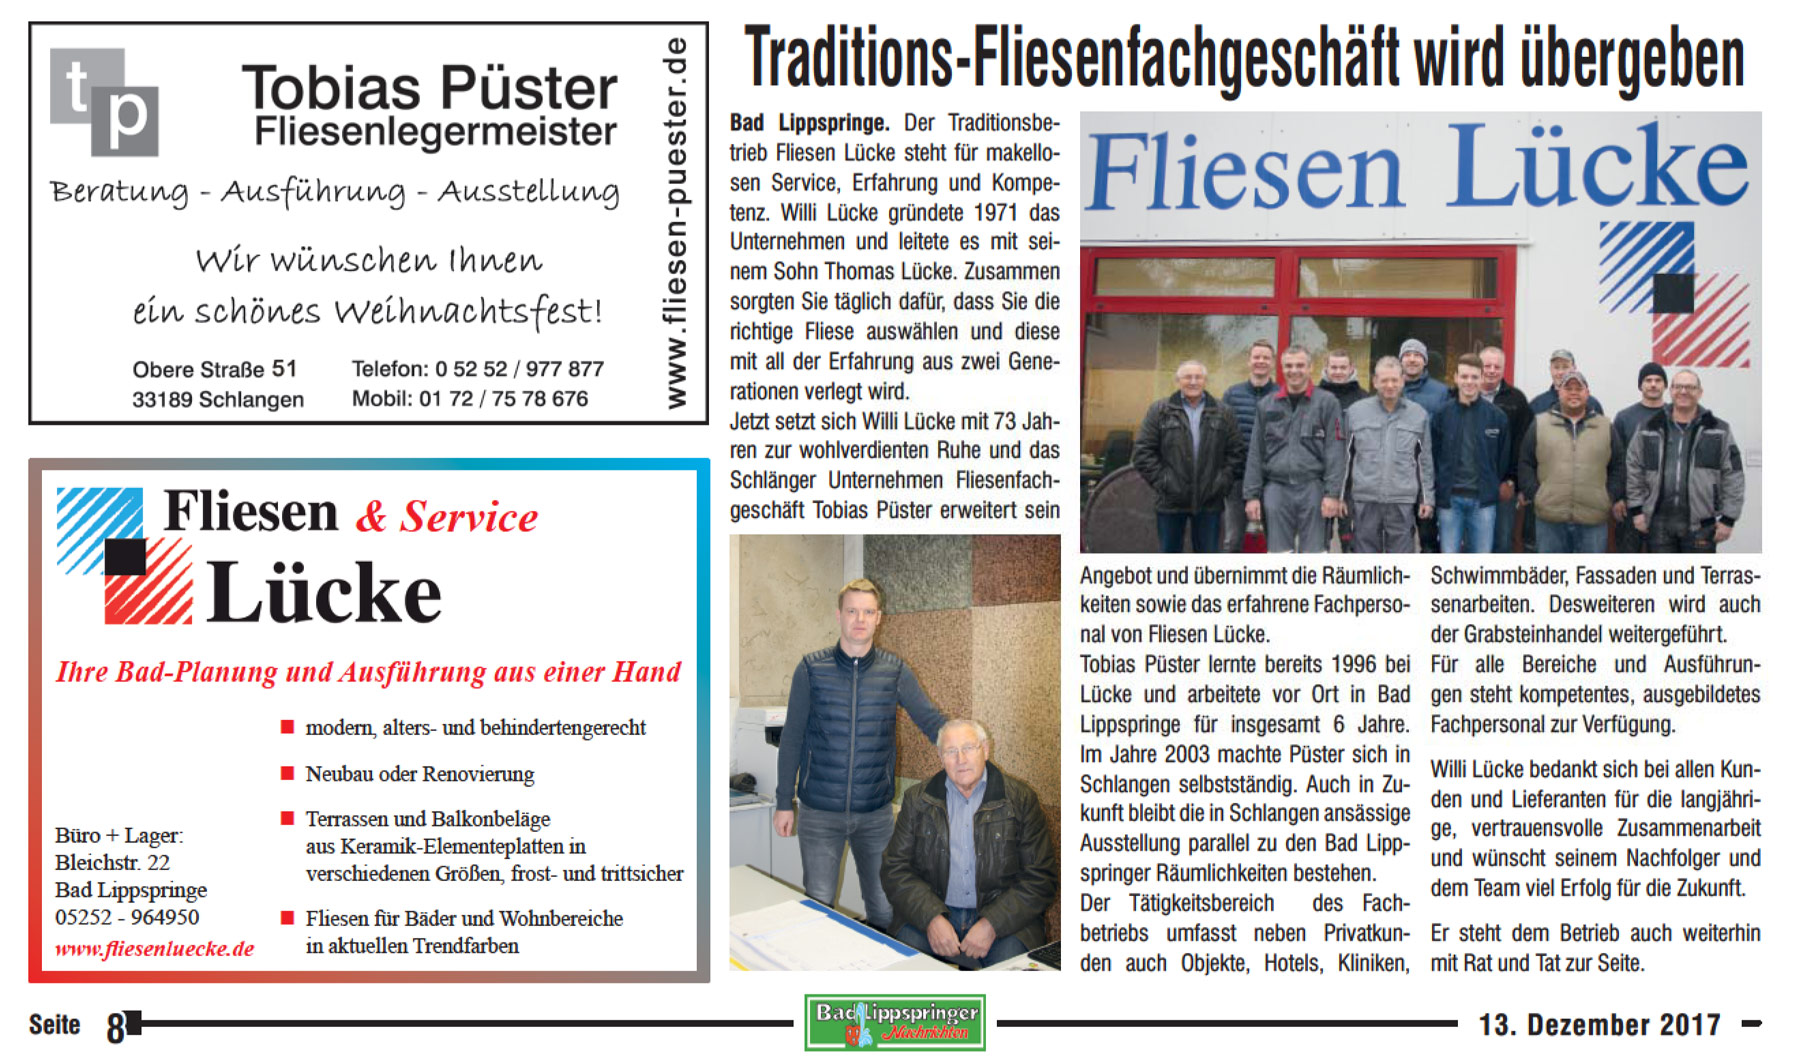 Fliesen Bad Lippspringe Fliesen Püster Gmbh Co Kg Ihr Fliesenpartner In Bad Lippspringe